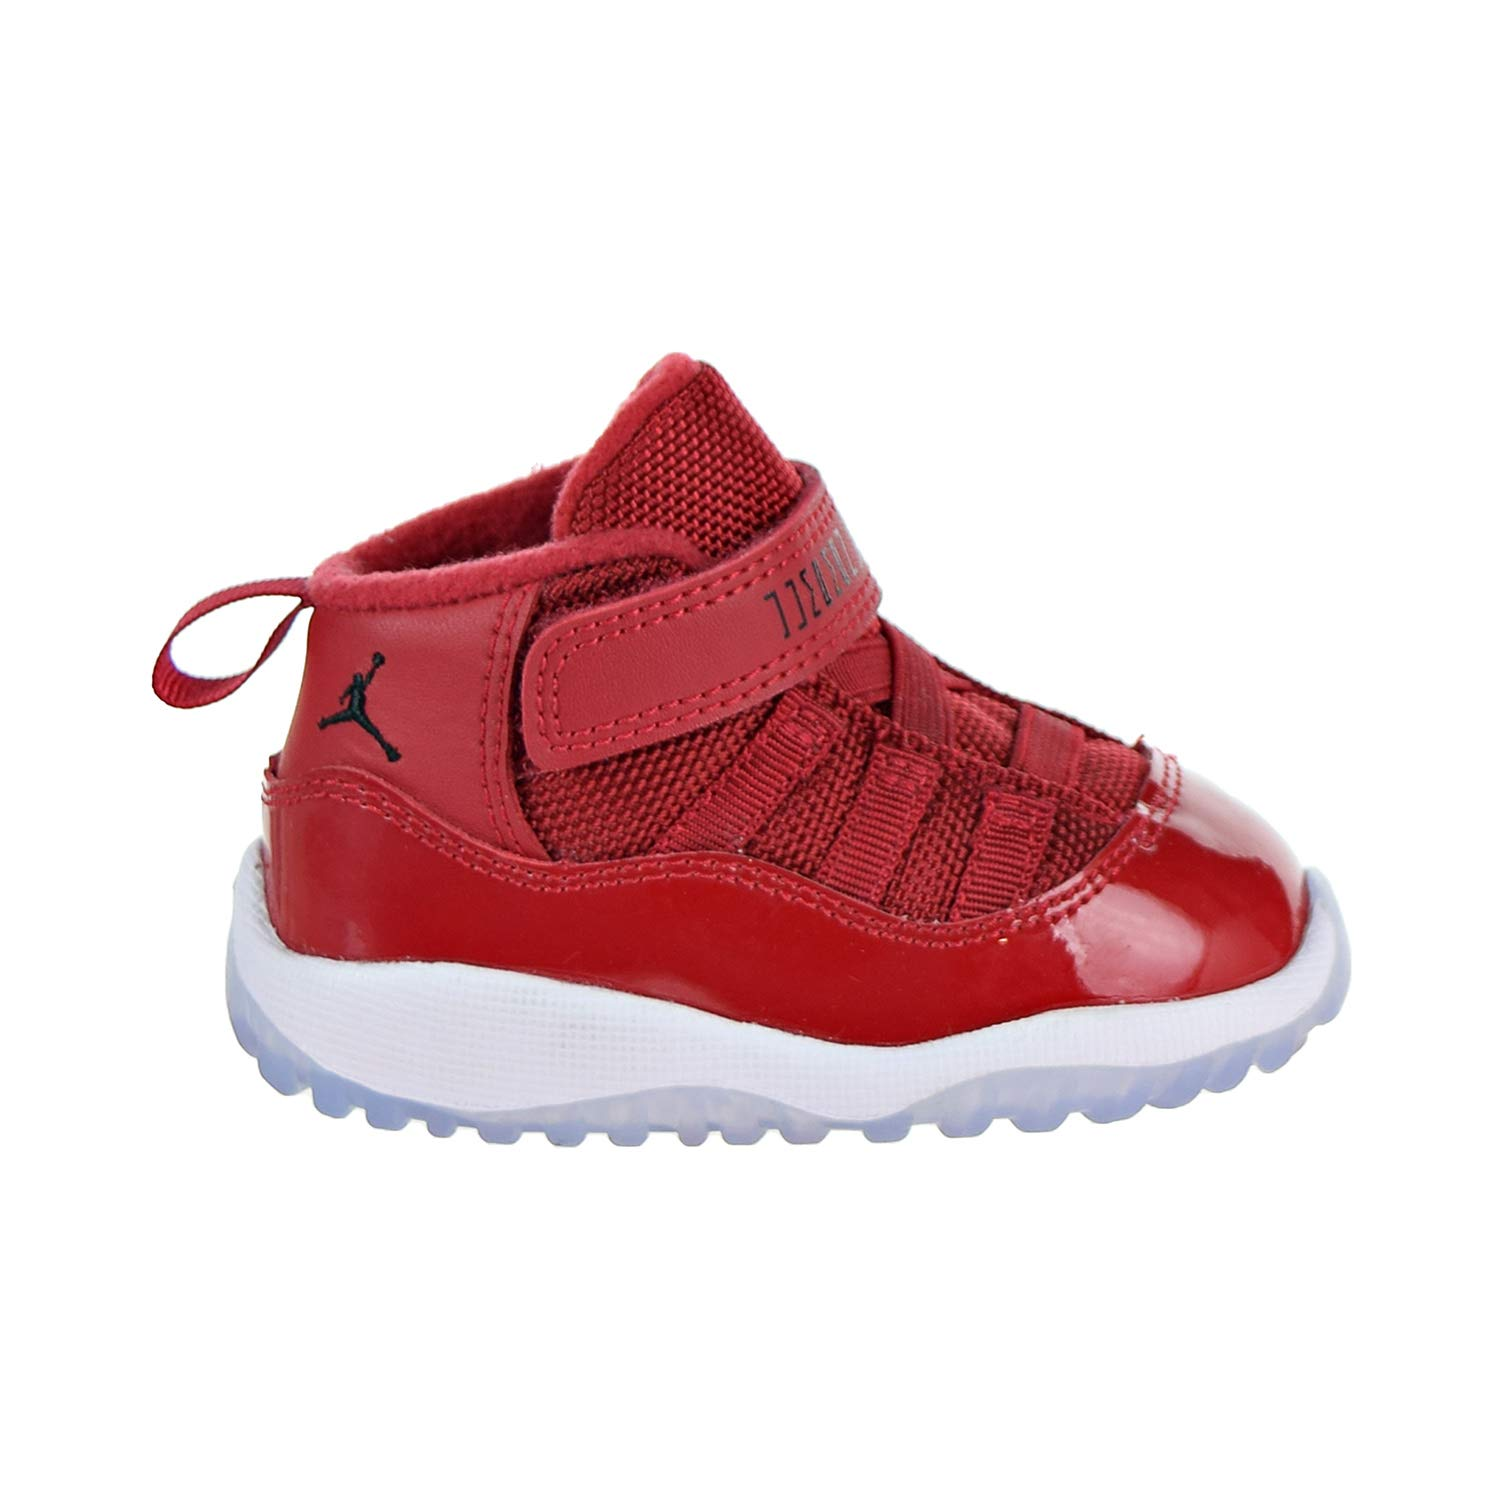 Jordan 11 Retro Basketball Infants Shoes Size